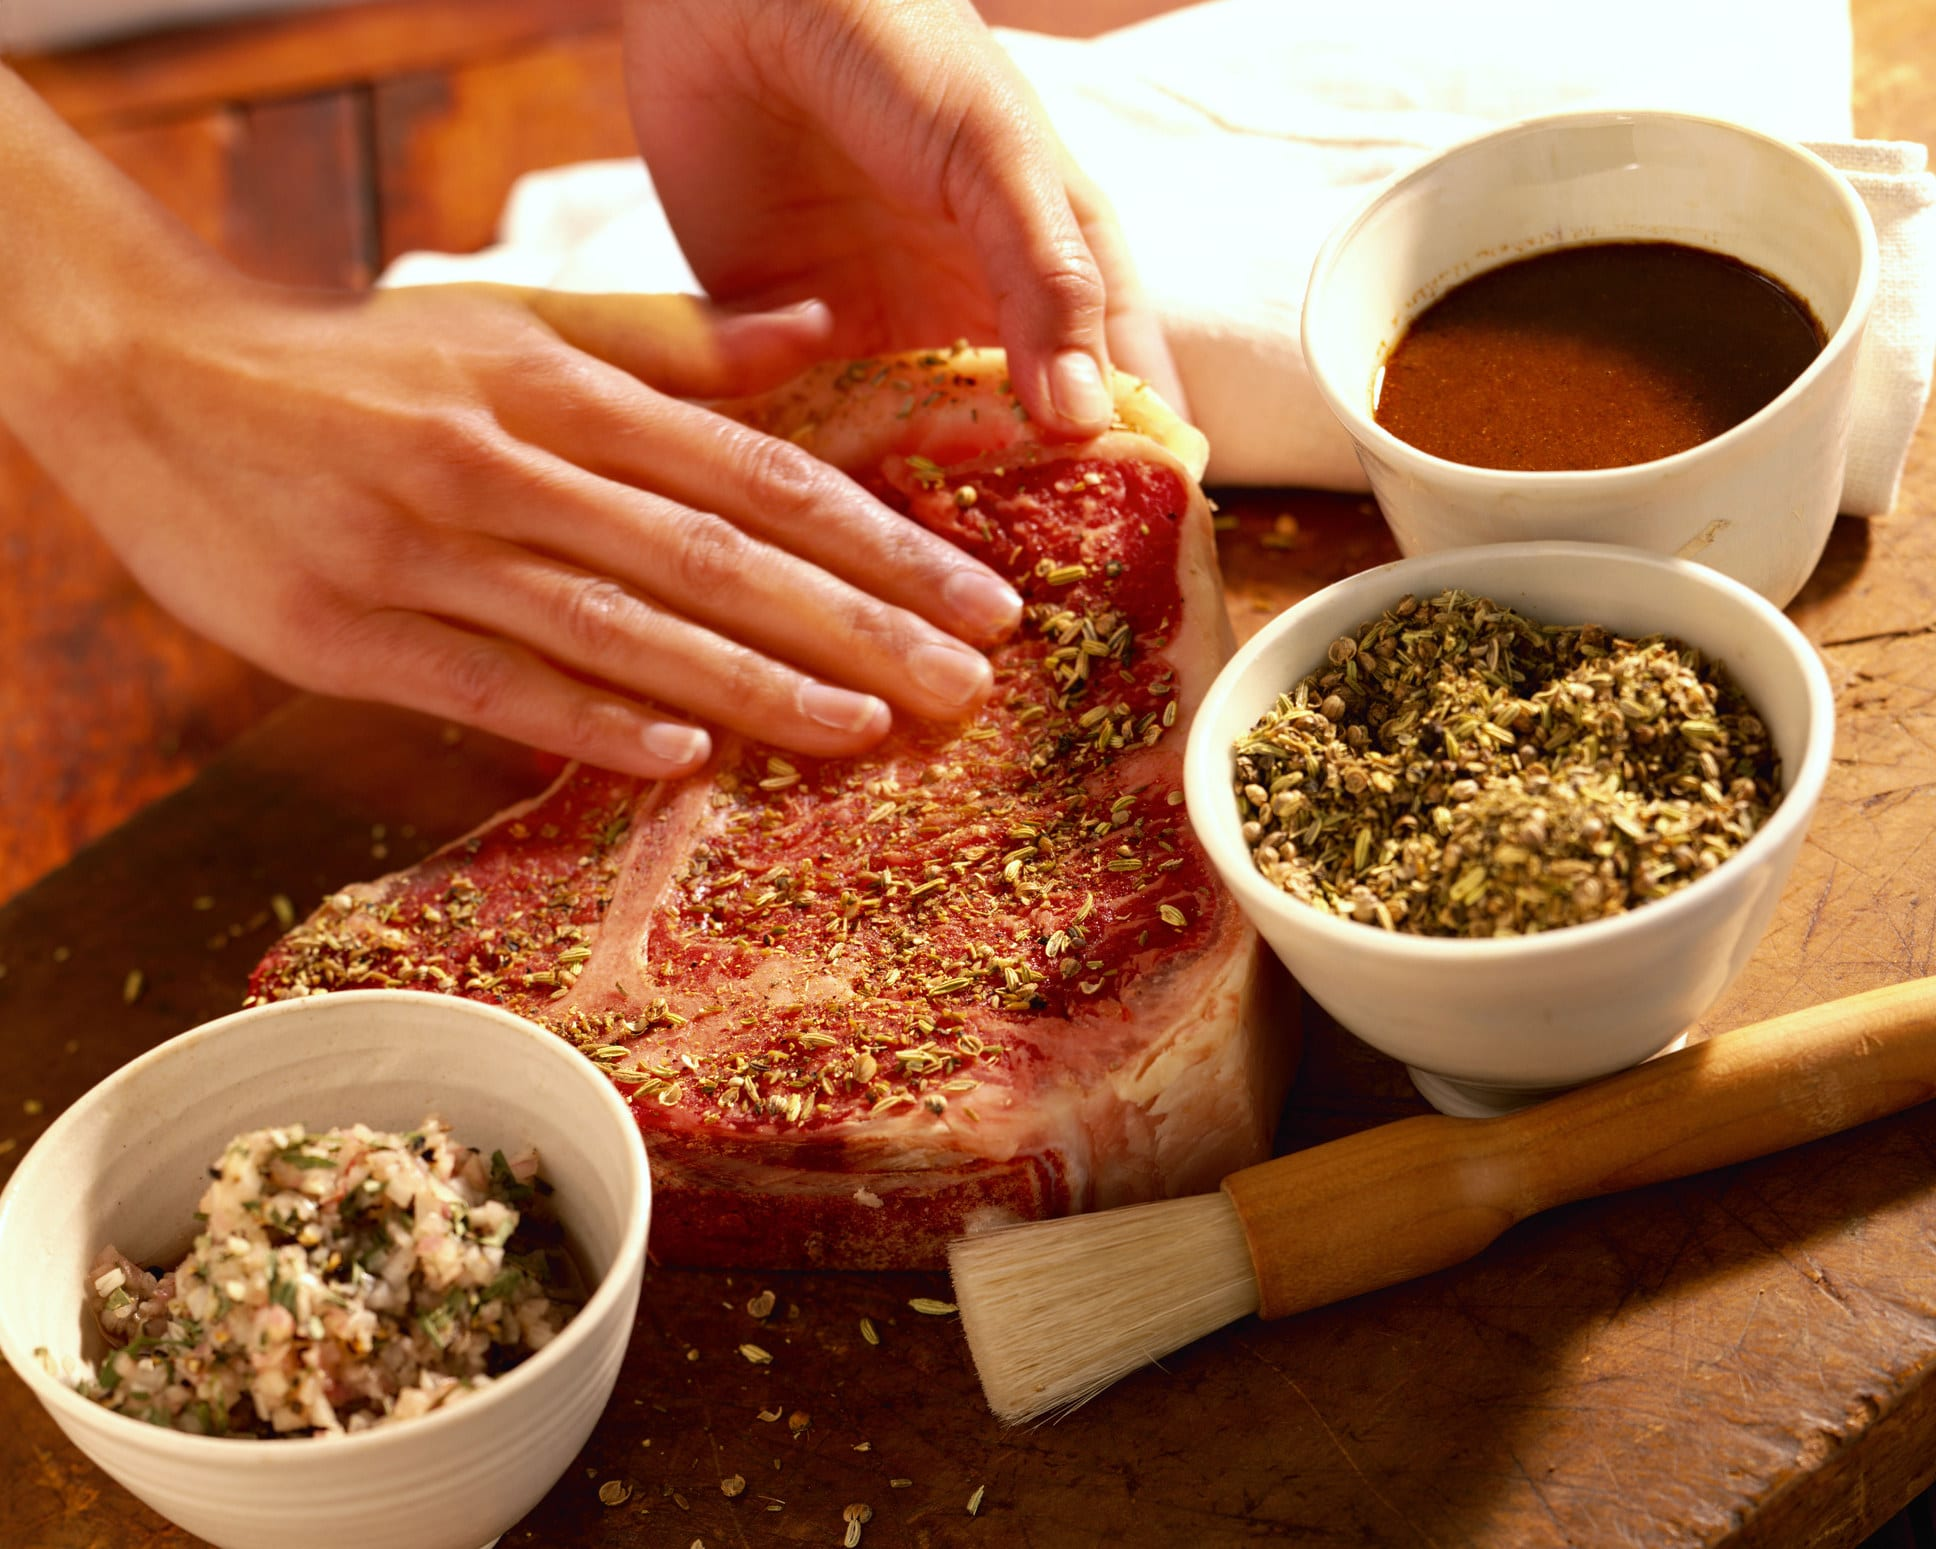 Hands seasoning a steak with herbs.